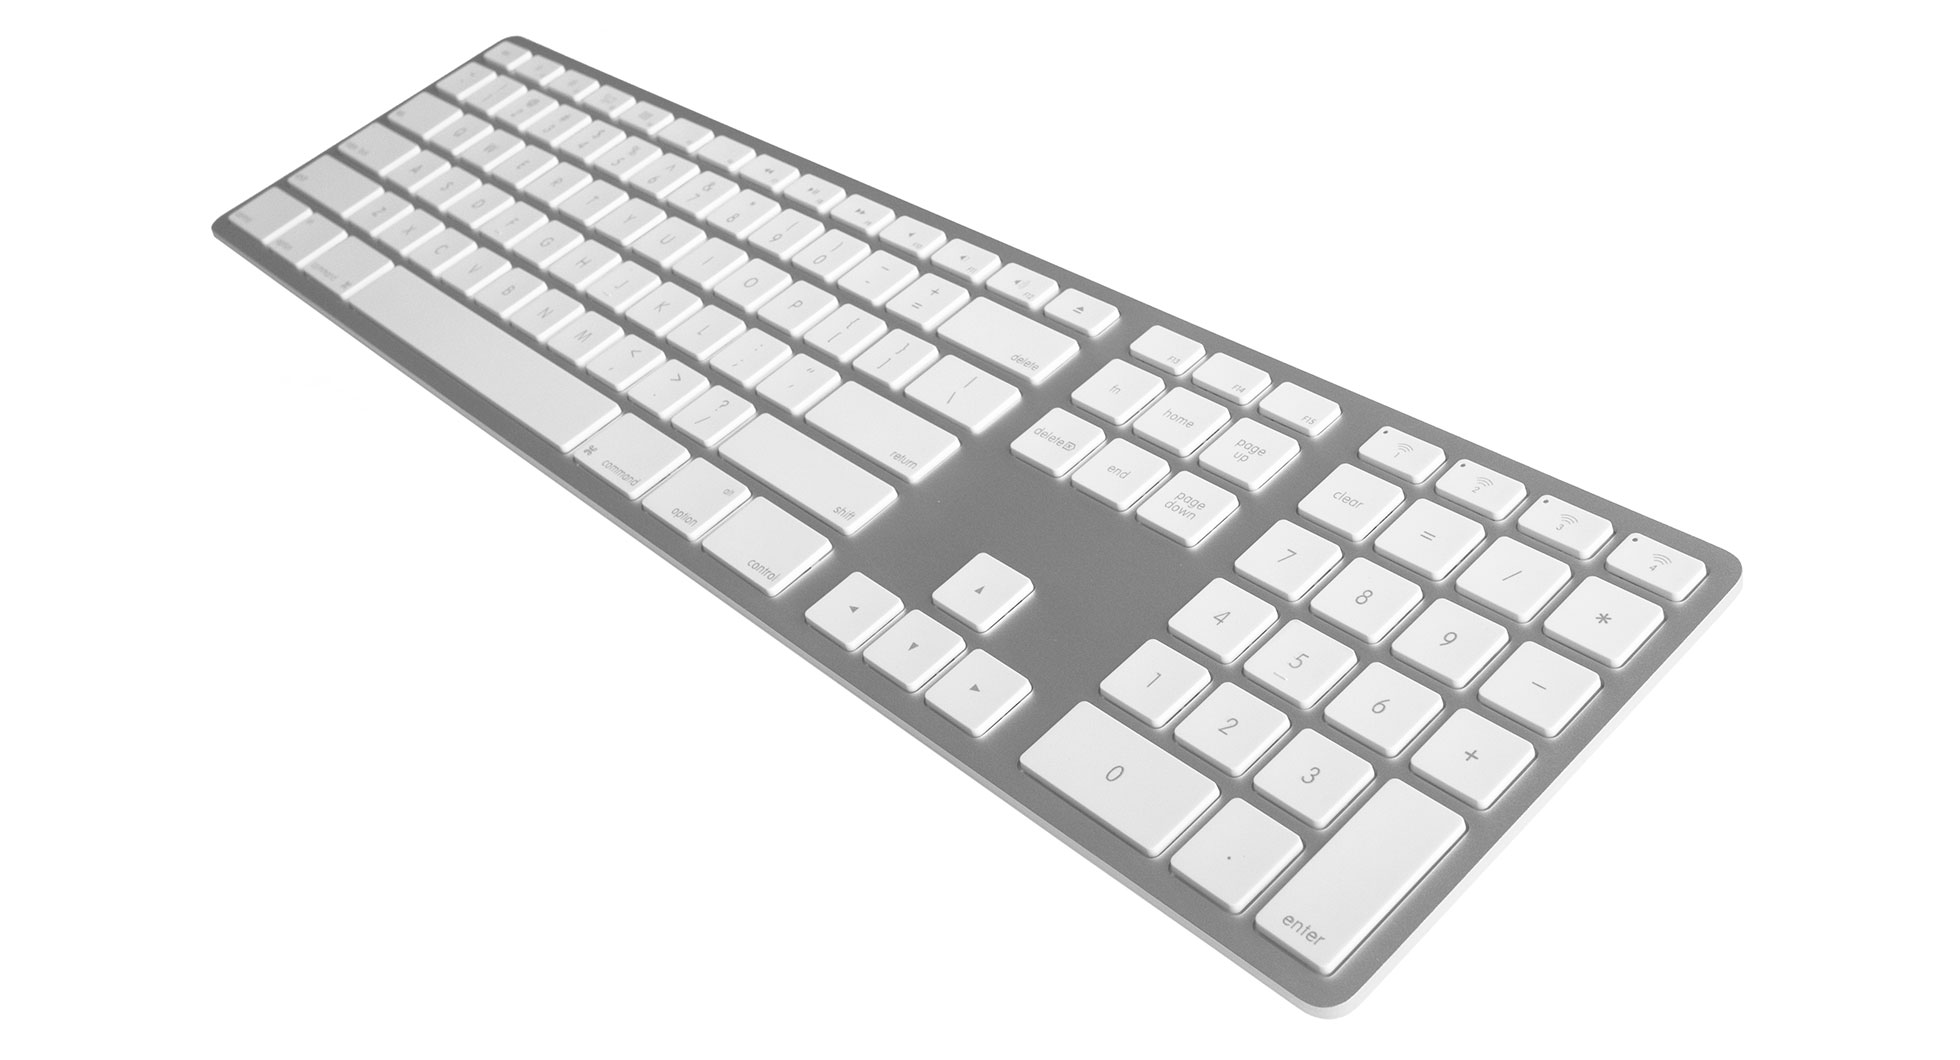 apple wireless keyboard ctrl alt del windows 7